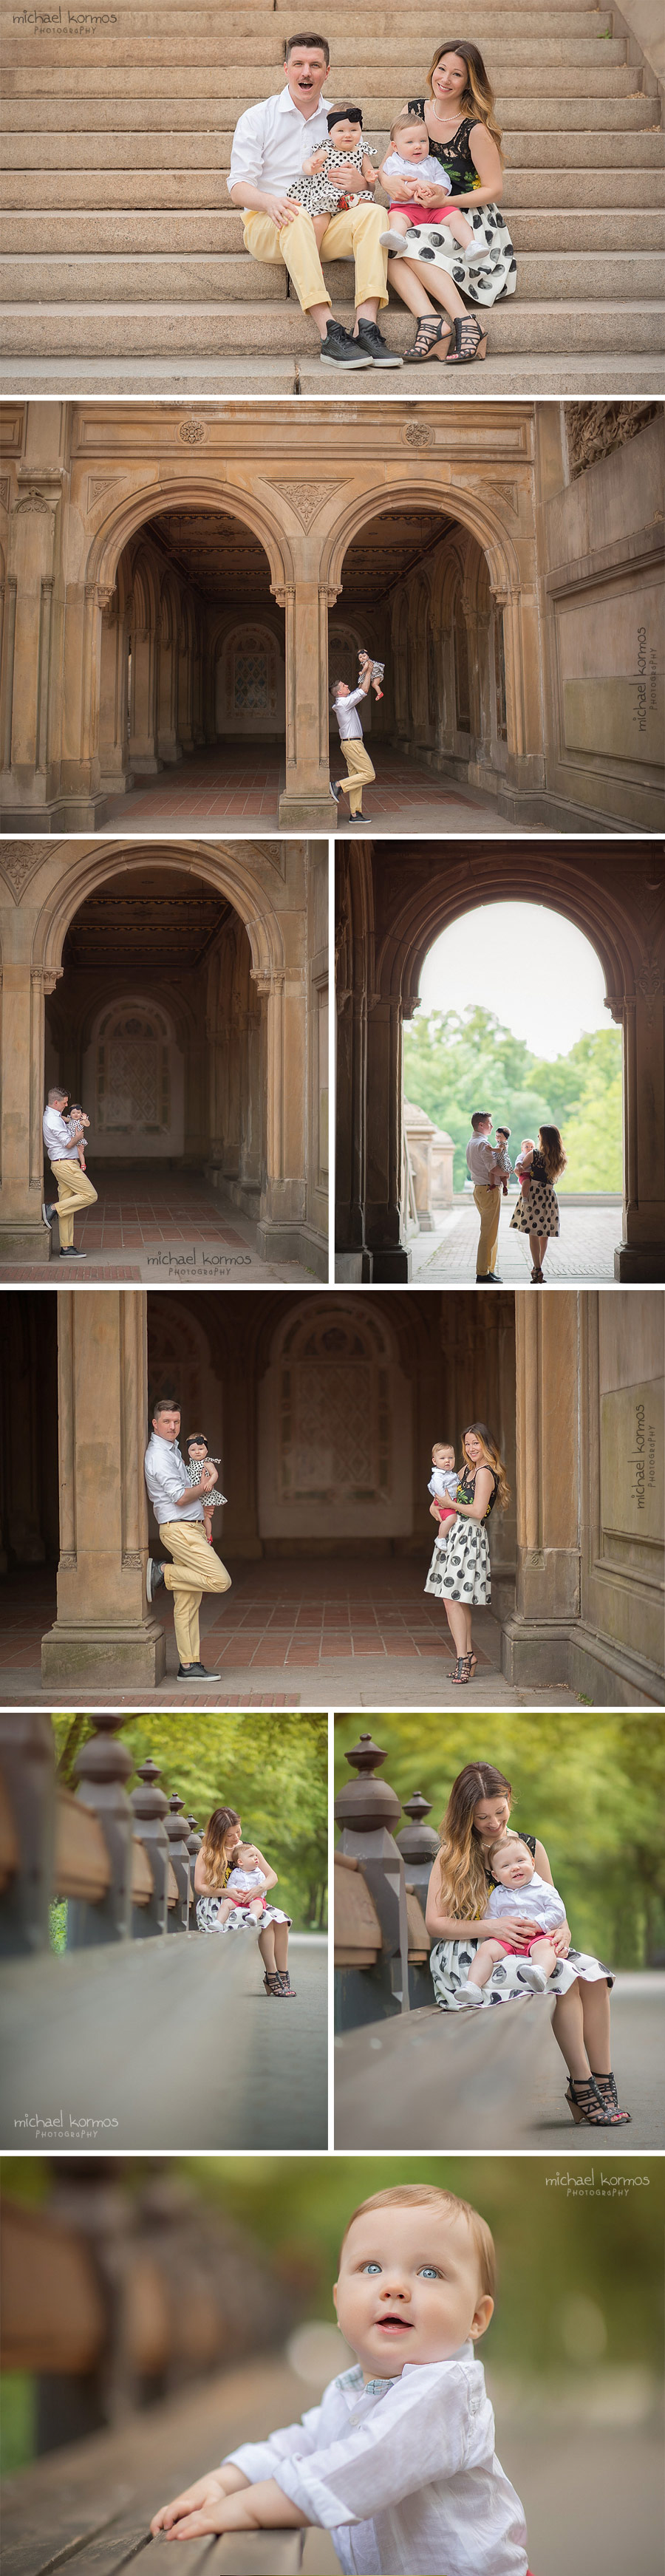 Central Park lifestyle family photo shoot